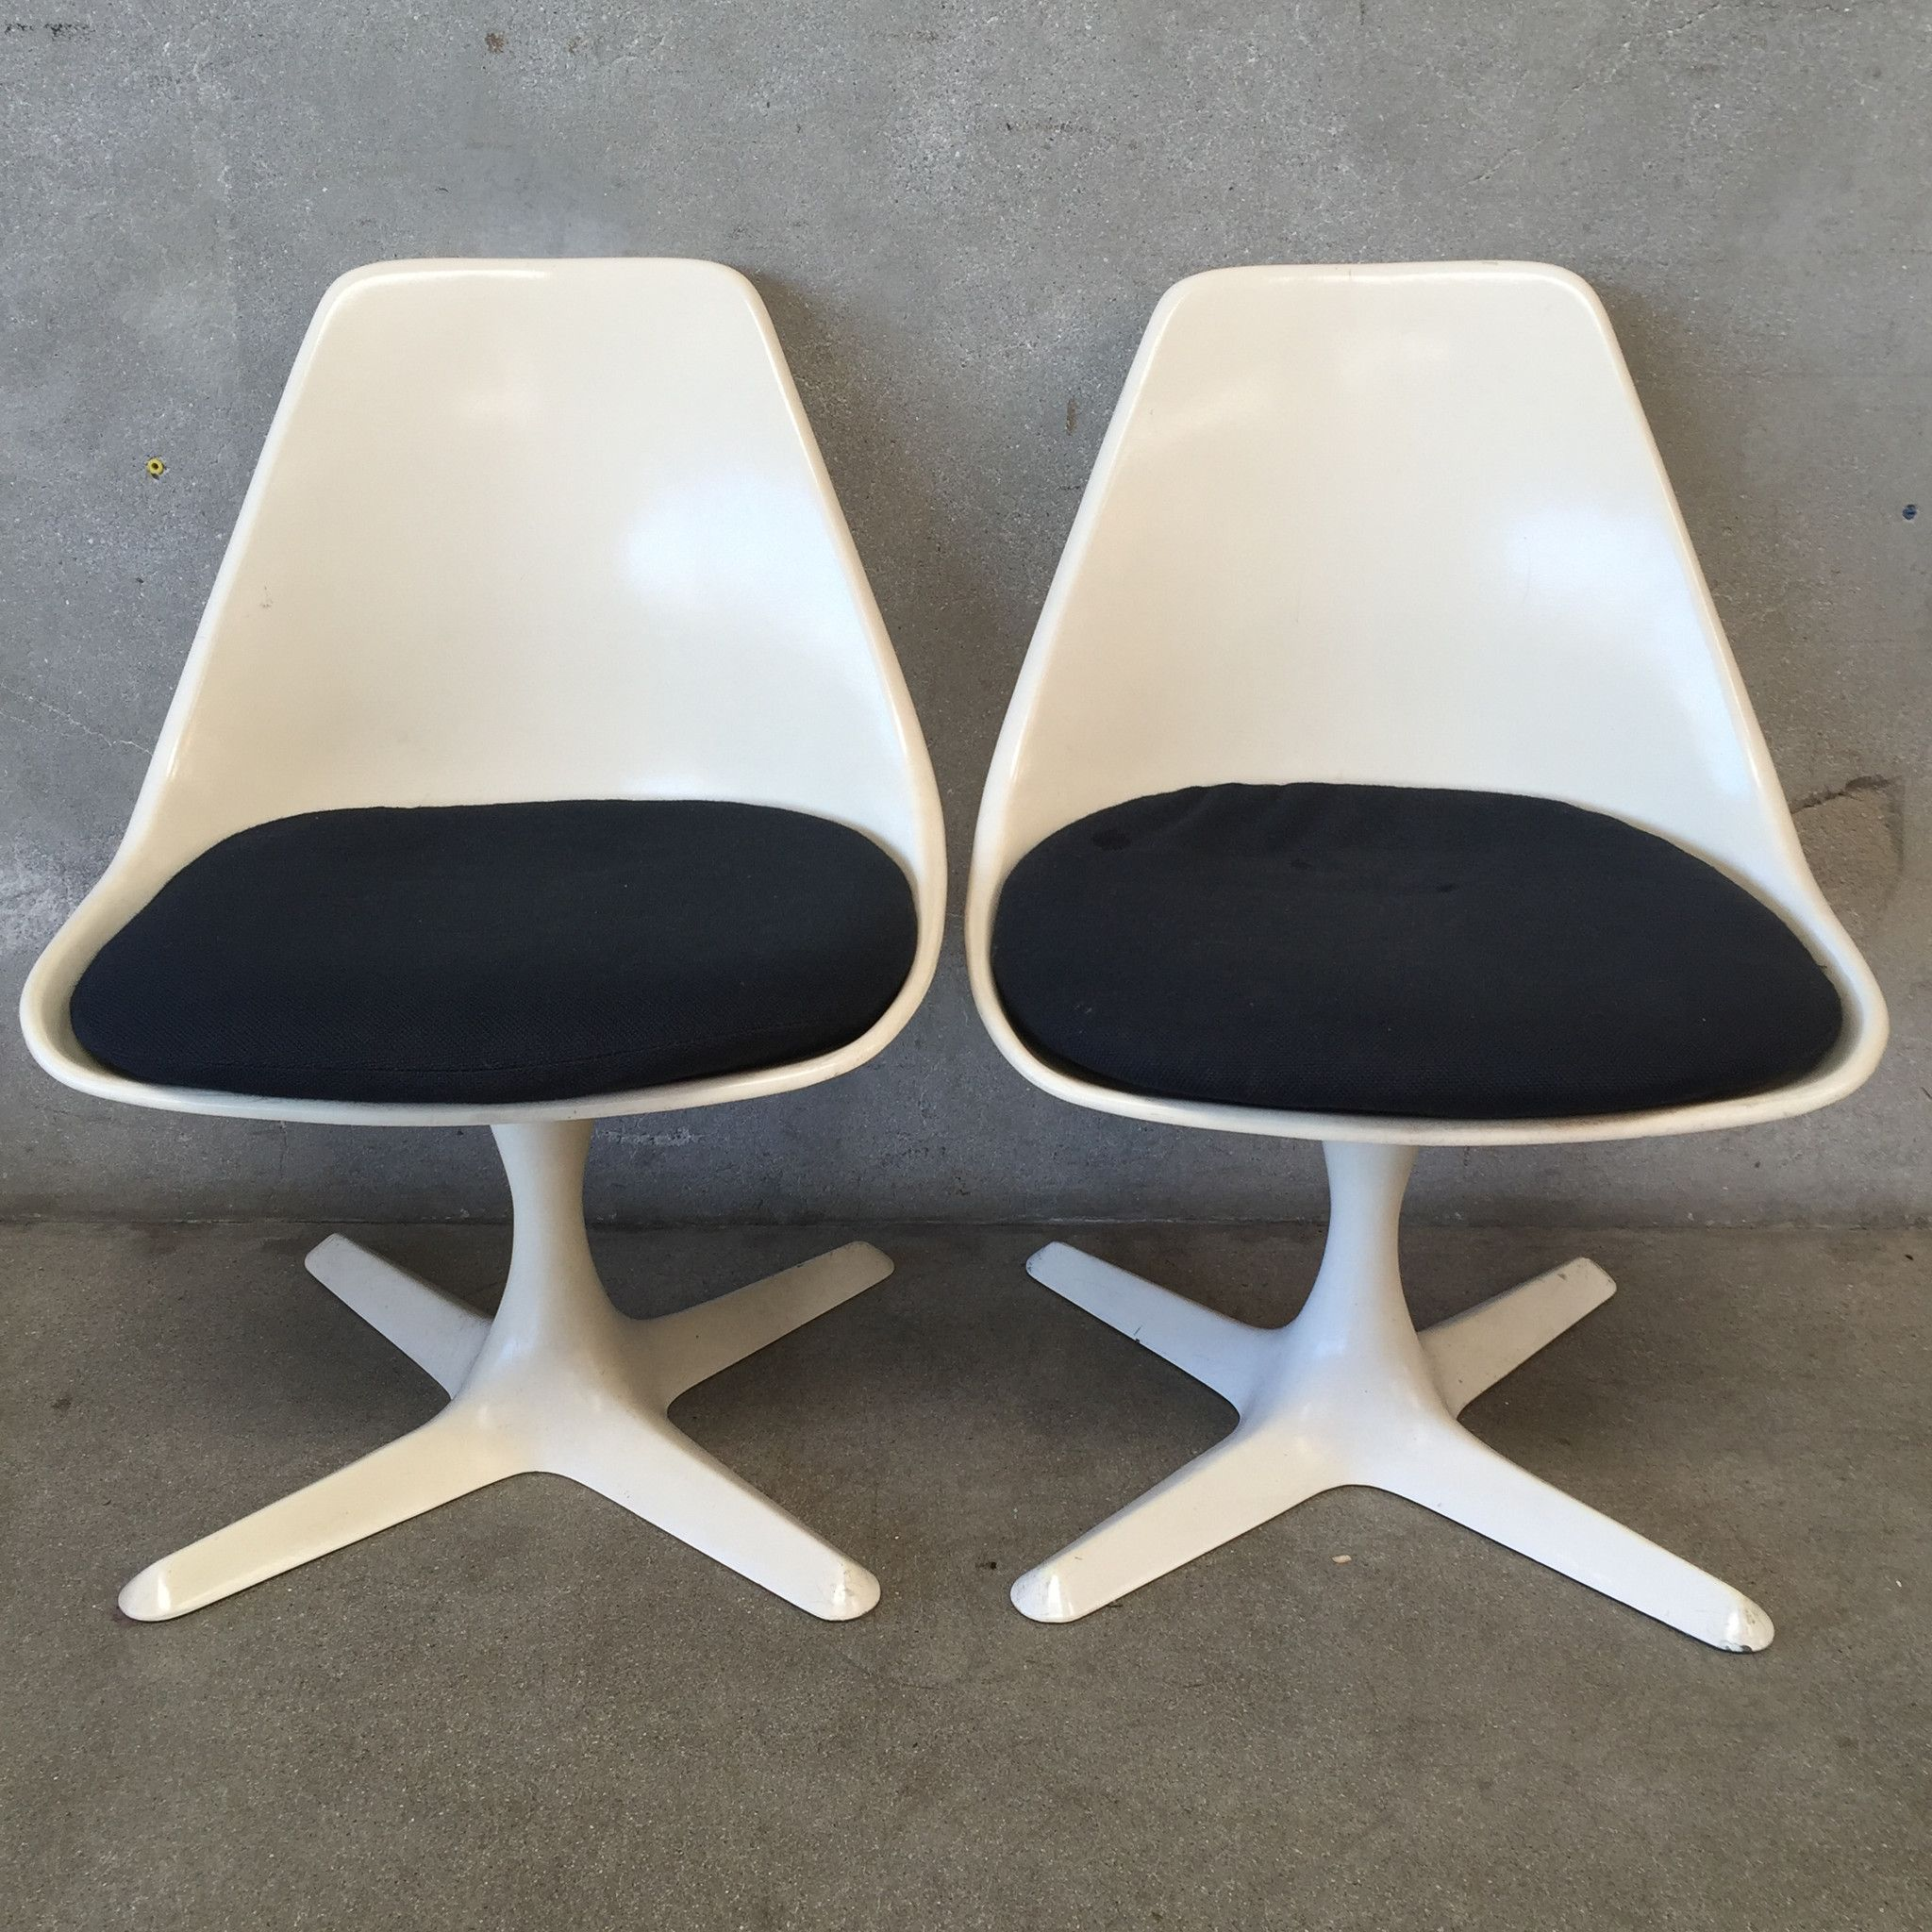 Vintage Pair Of Burke Tulip Chairs 115 Clic Mid Century Modern Design With Urethane Foam Removable Padded Seat We Have 2nd Pairs 4 Total This